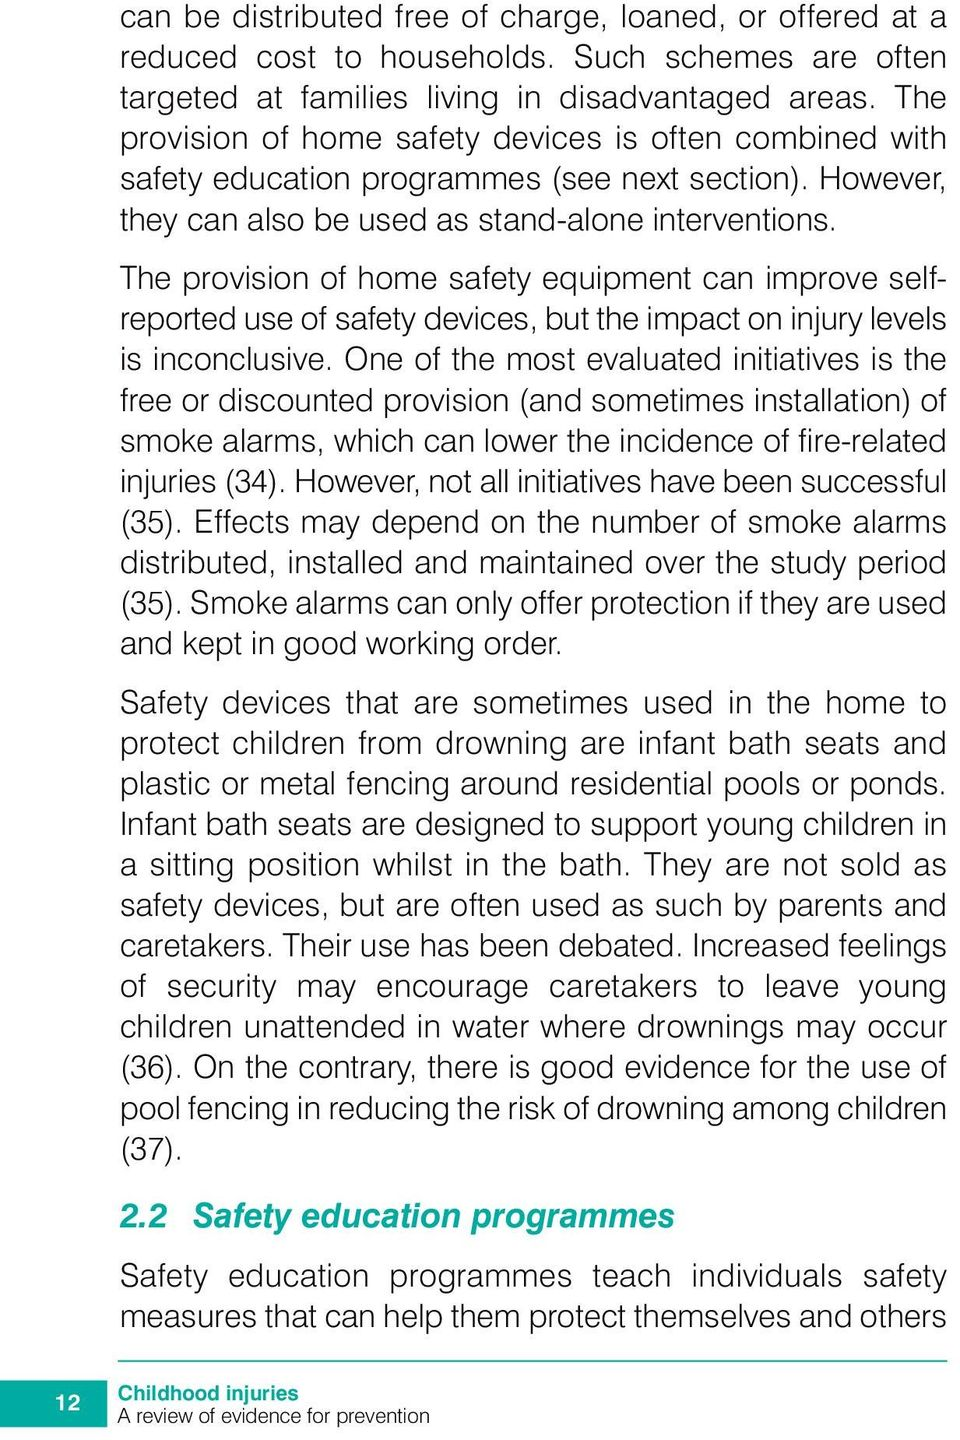 The provision of home safety equipment can improve selfreported use of safety devices, but the impact on injury levels is inconclusive.